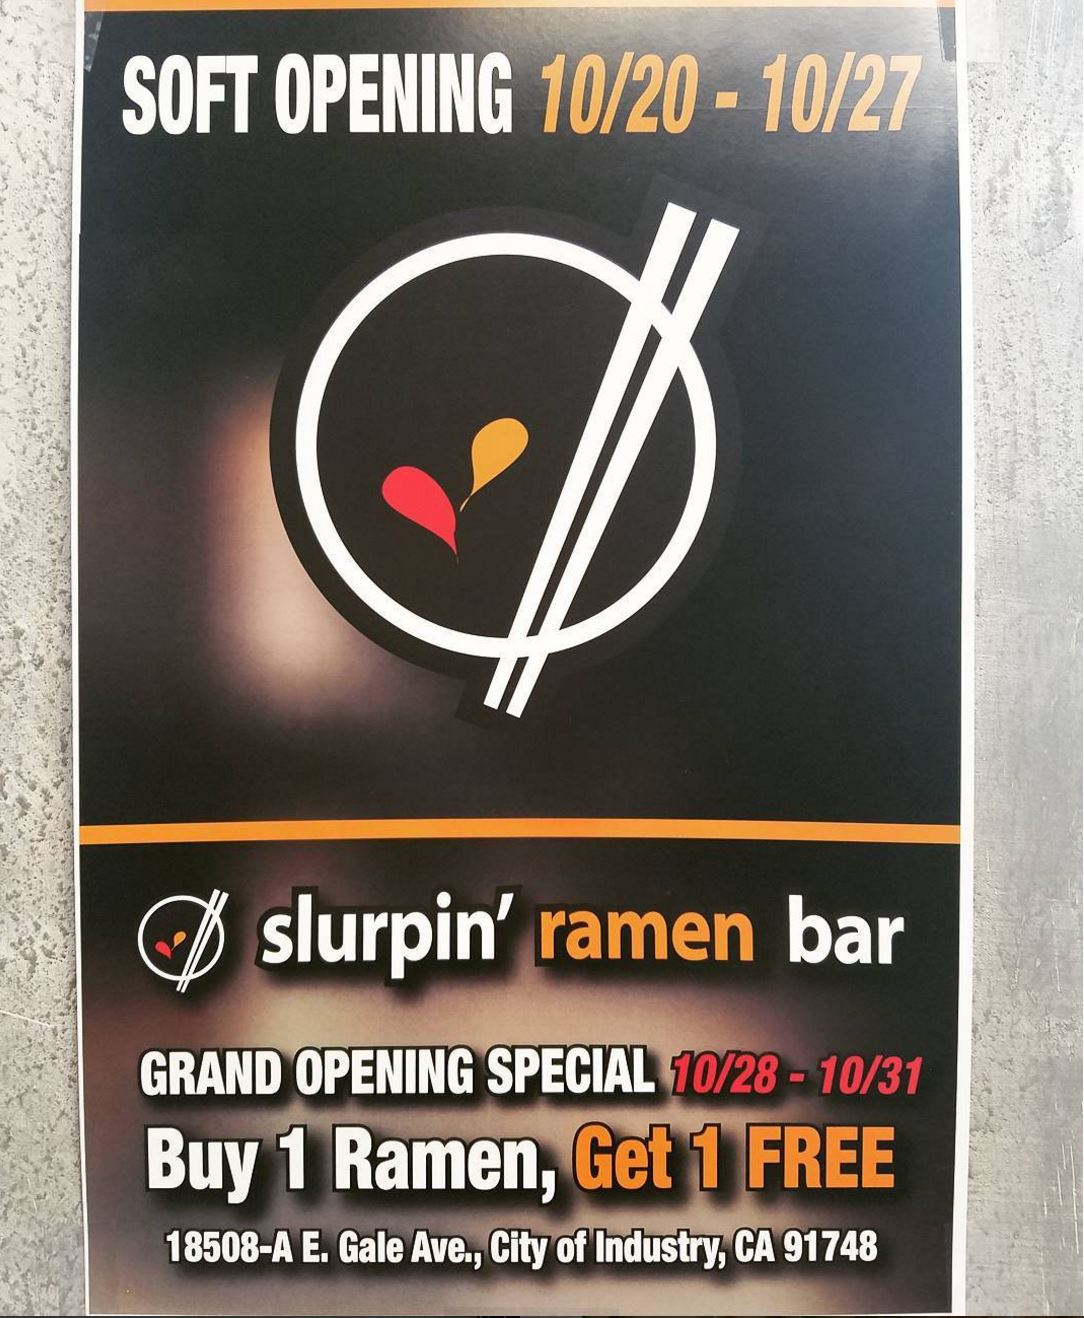 Oct. 28 - 31 | Buy 1 Get 1 Free Ramen @ Slurpin' Ramen Bar - City of Industry